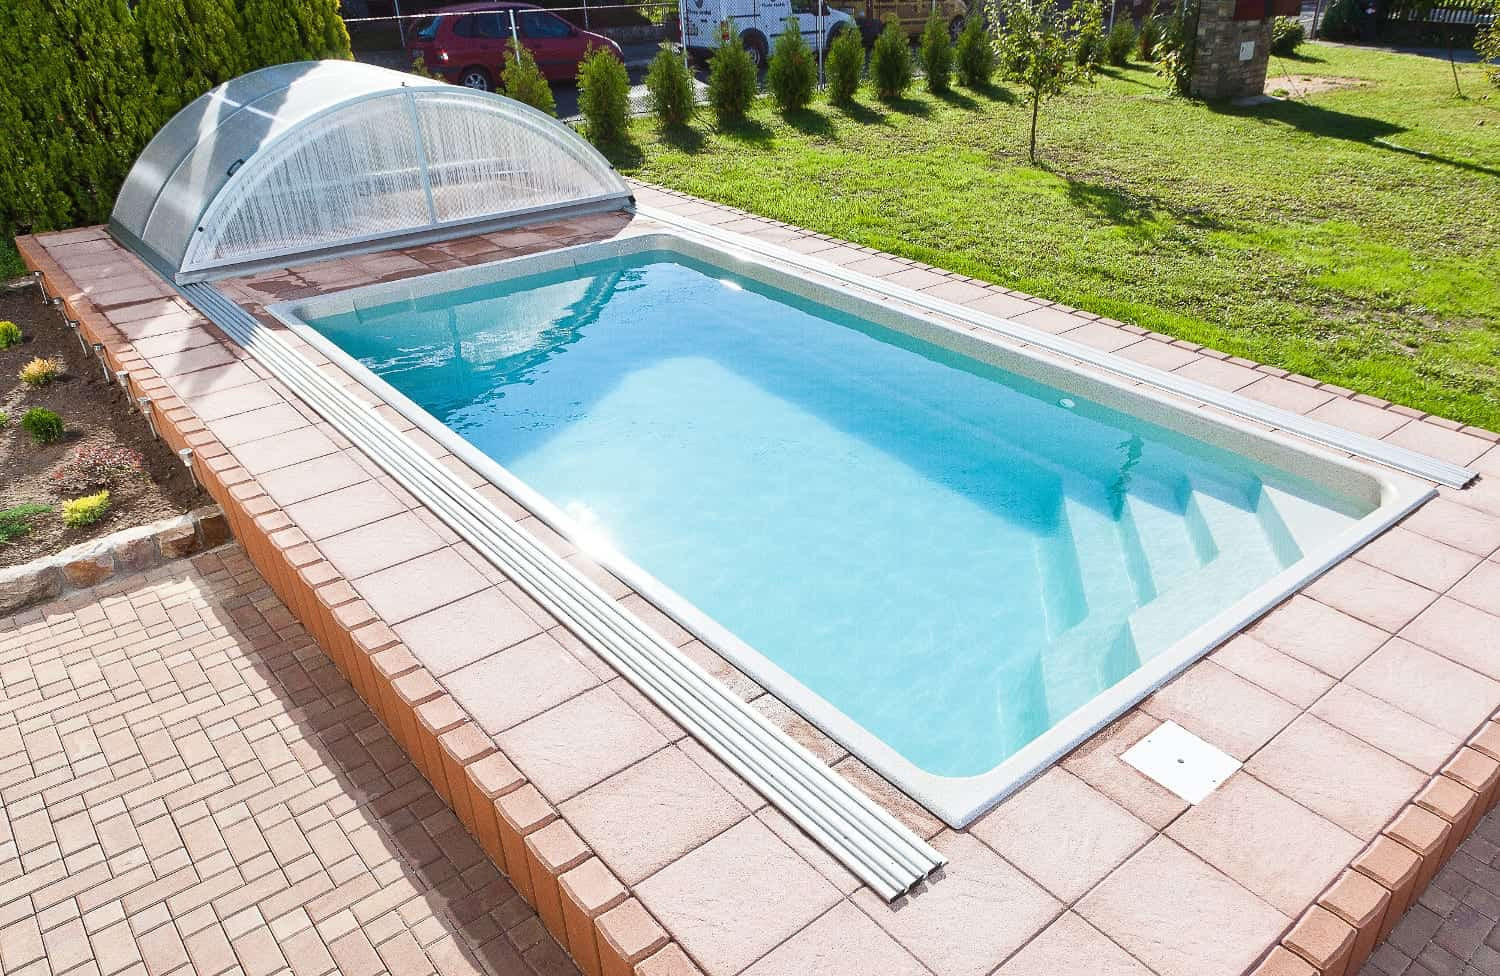 Ametyst Compact Ceramic Pool: 6.18 X 3.14 X 1.40m